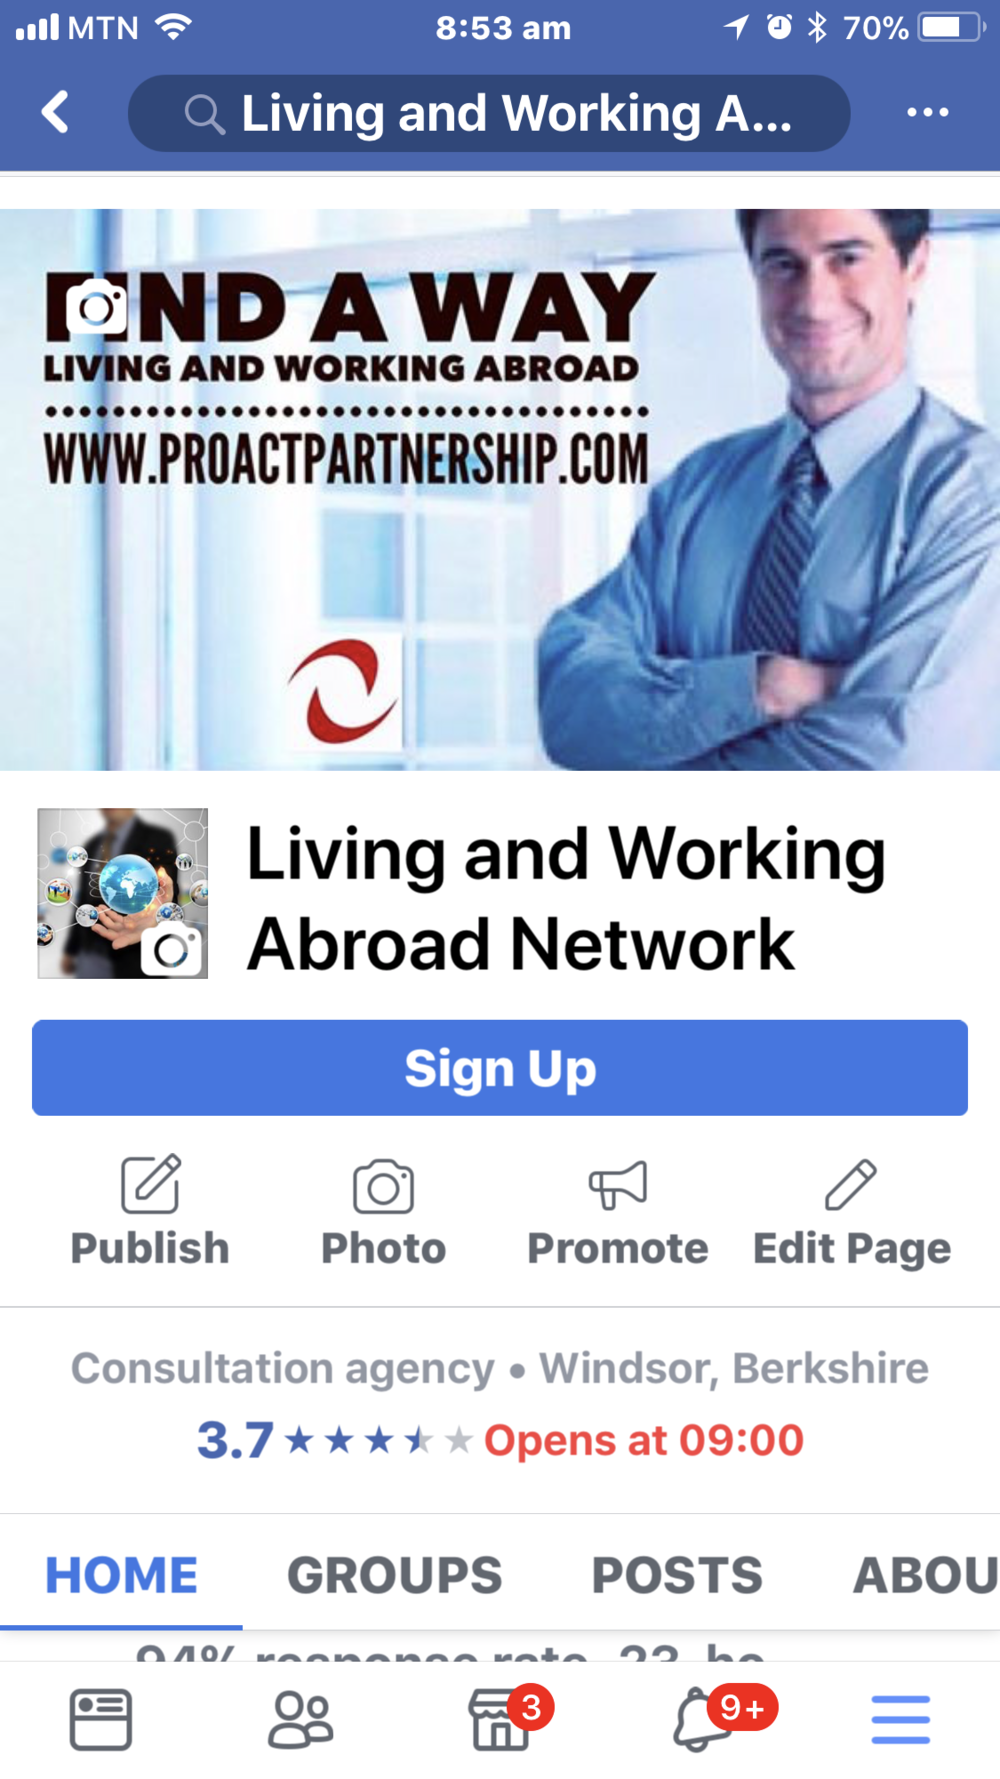 https://www.facebook.com/LivingAndWorkingAbroad/